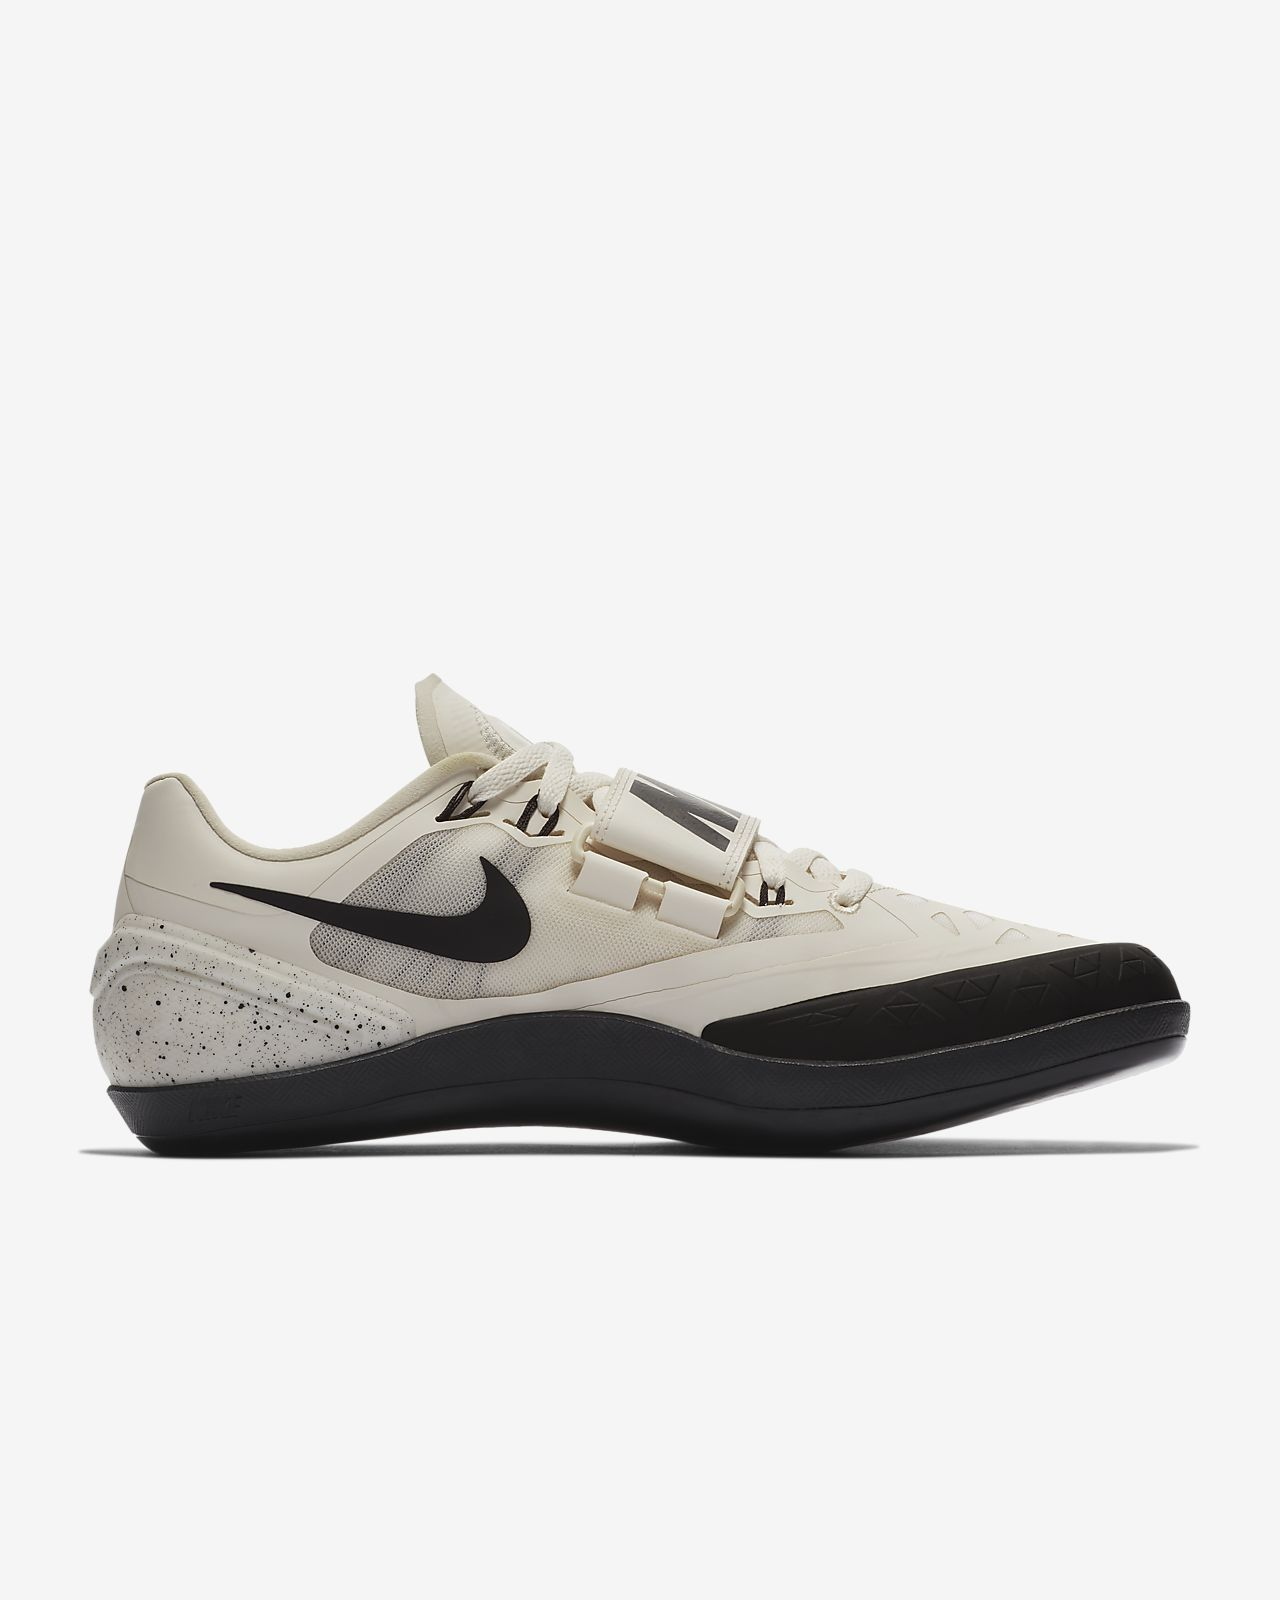 newest 7db6d 379ec Nike Zoom Rotational 6 Unisex Throwing Shoe. Nike.com